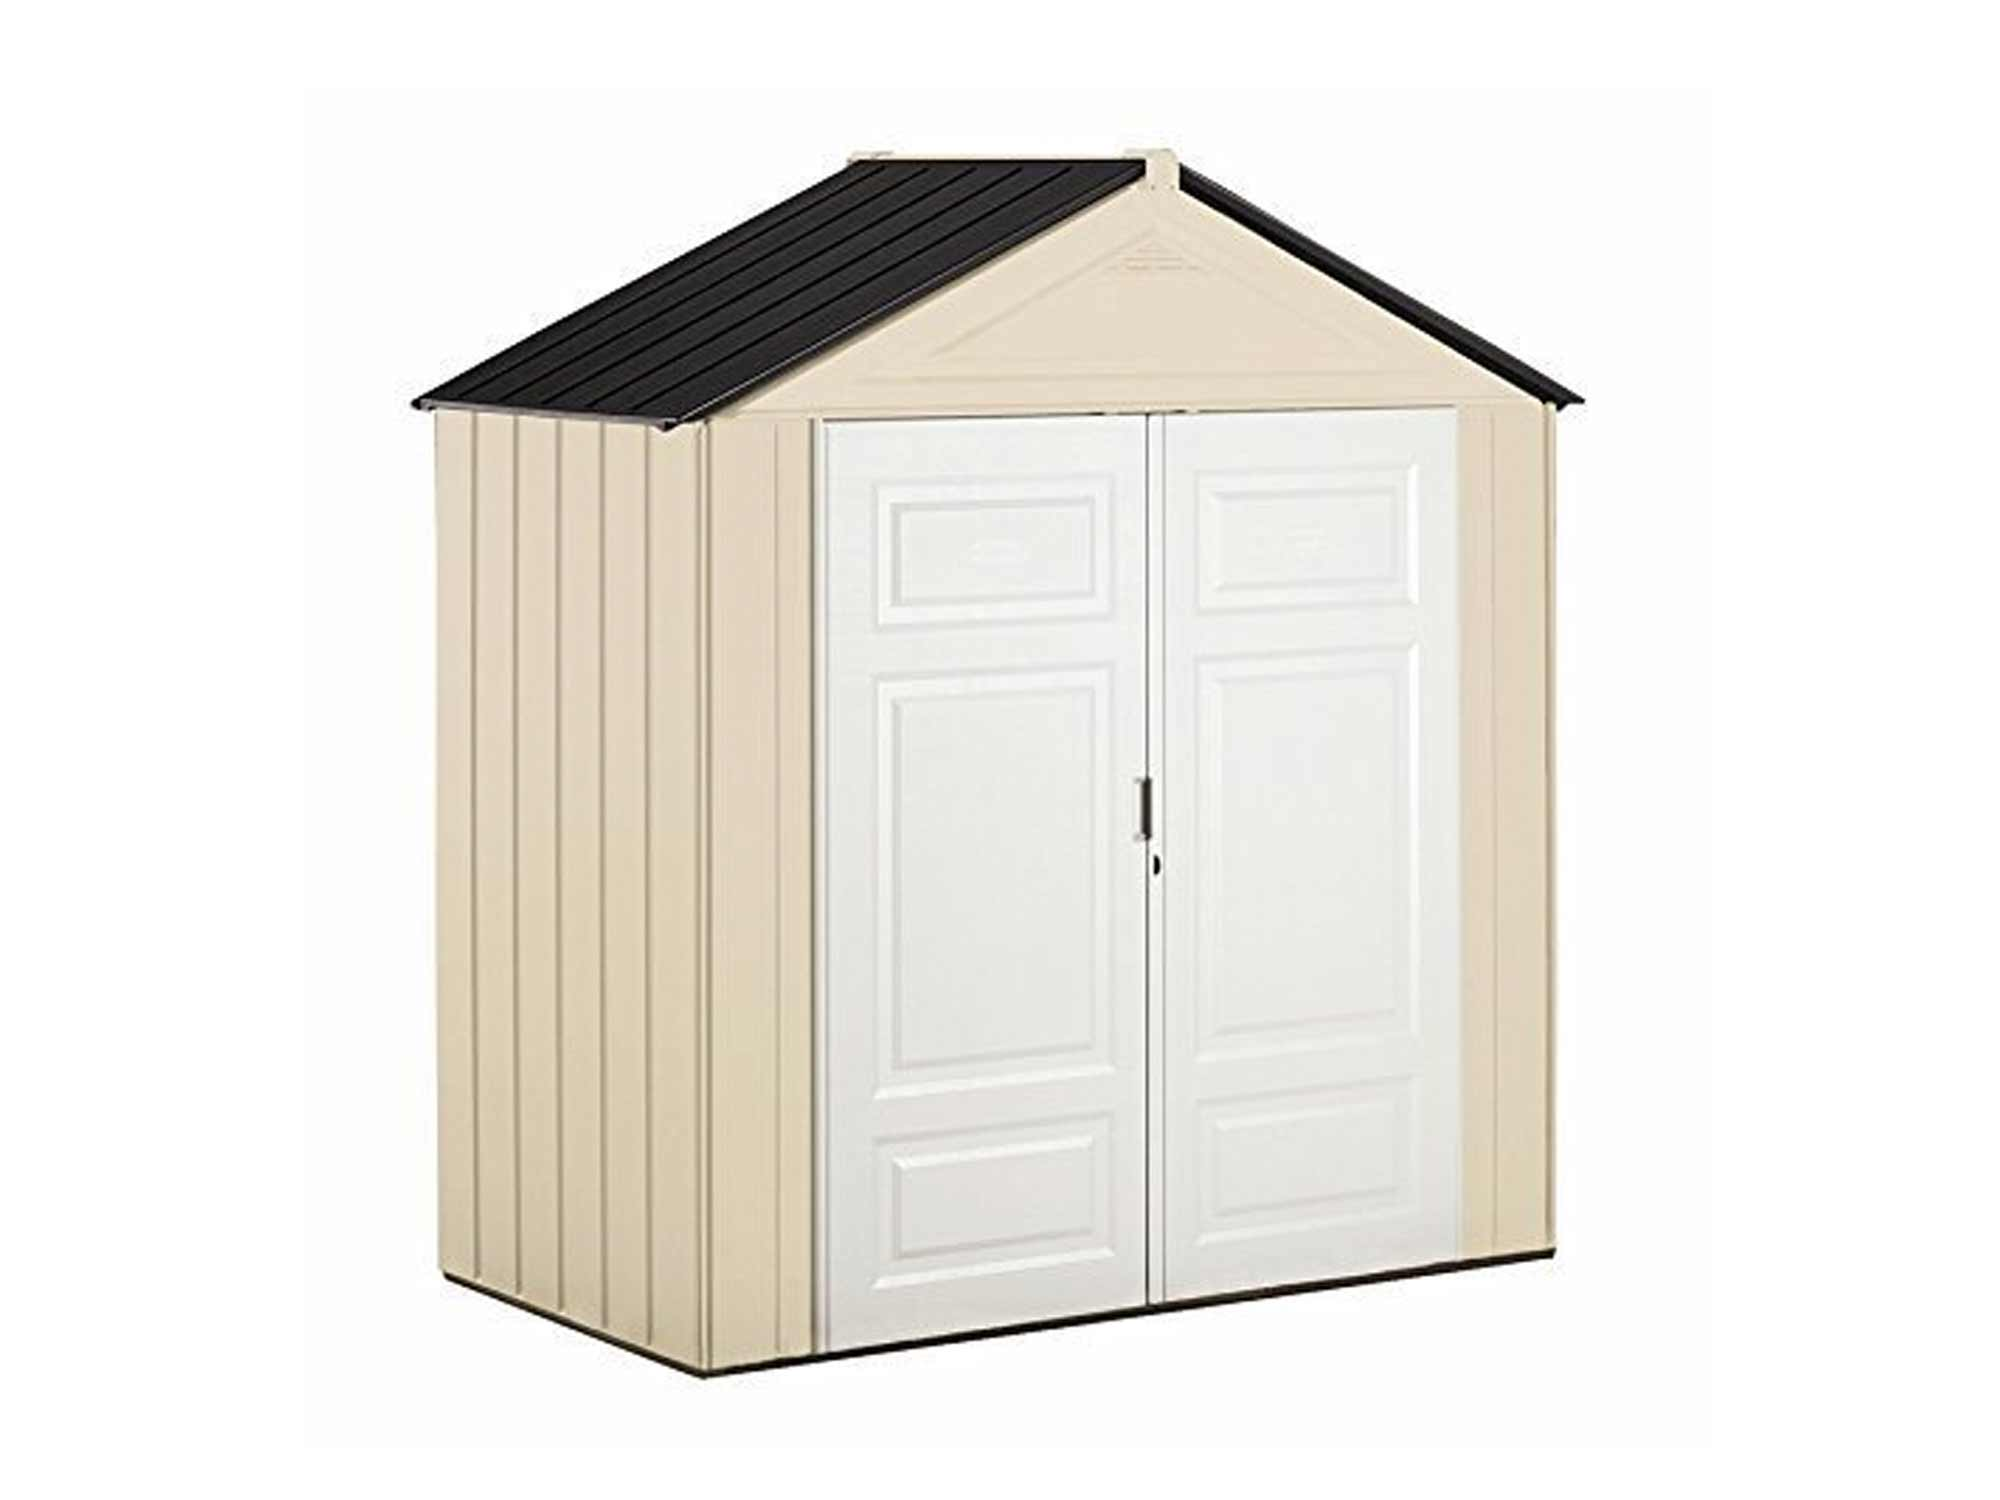 Rubbermaid outdoor shed